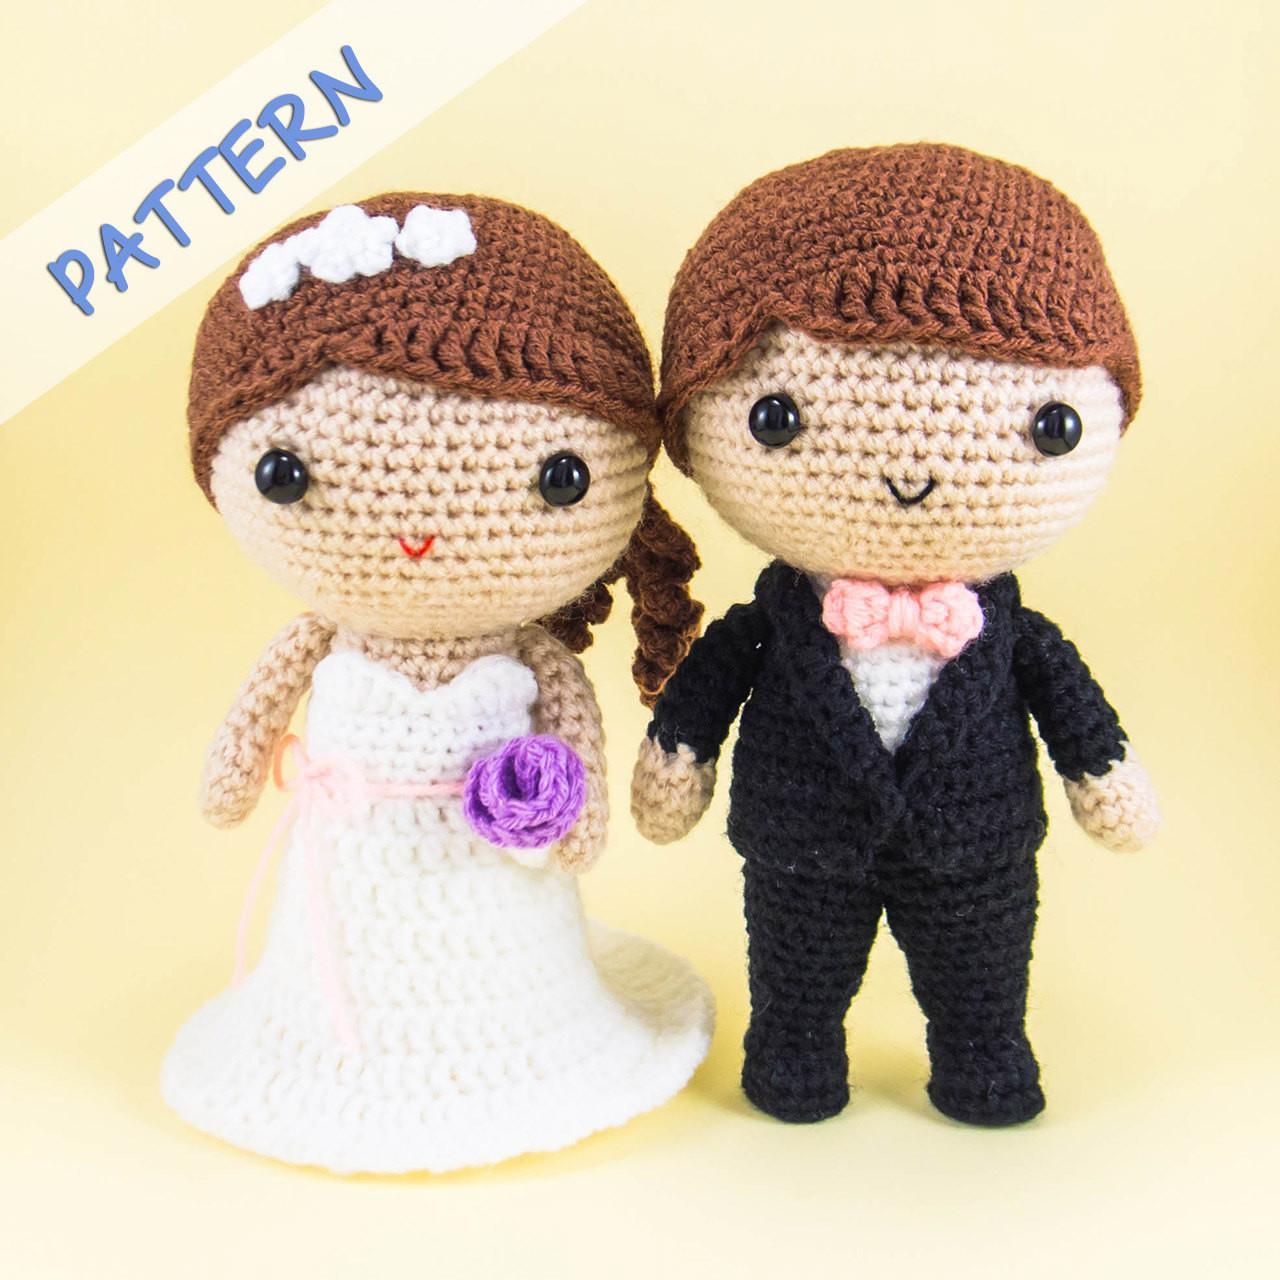 Bride Groom Amigurumi Pattern Diy Wedding Decoration